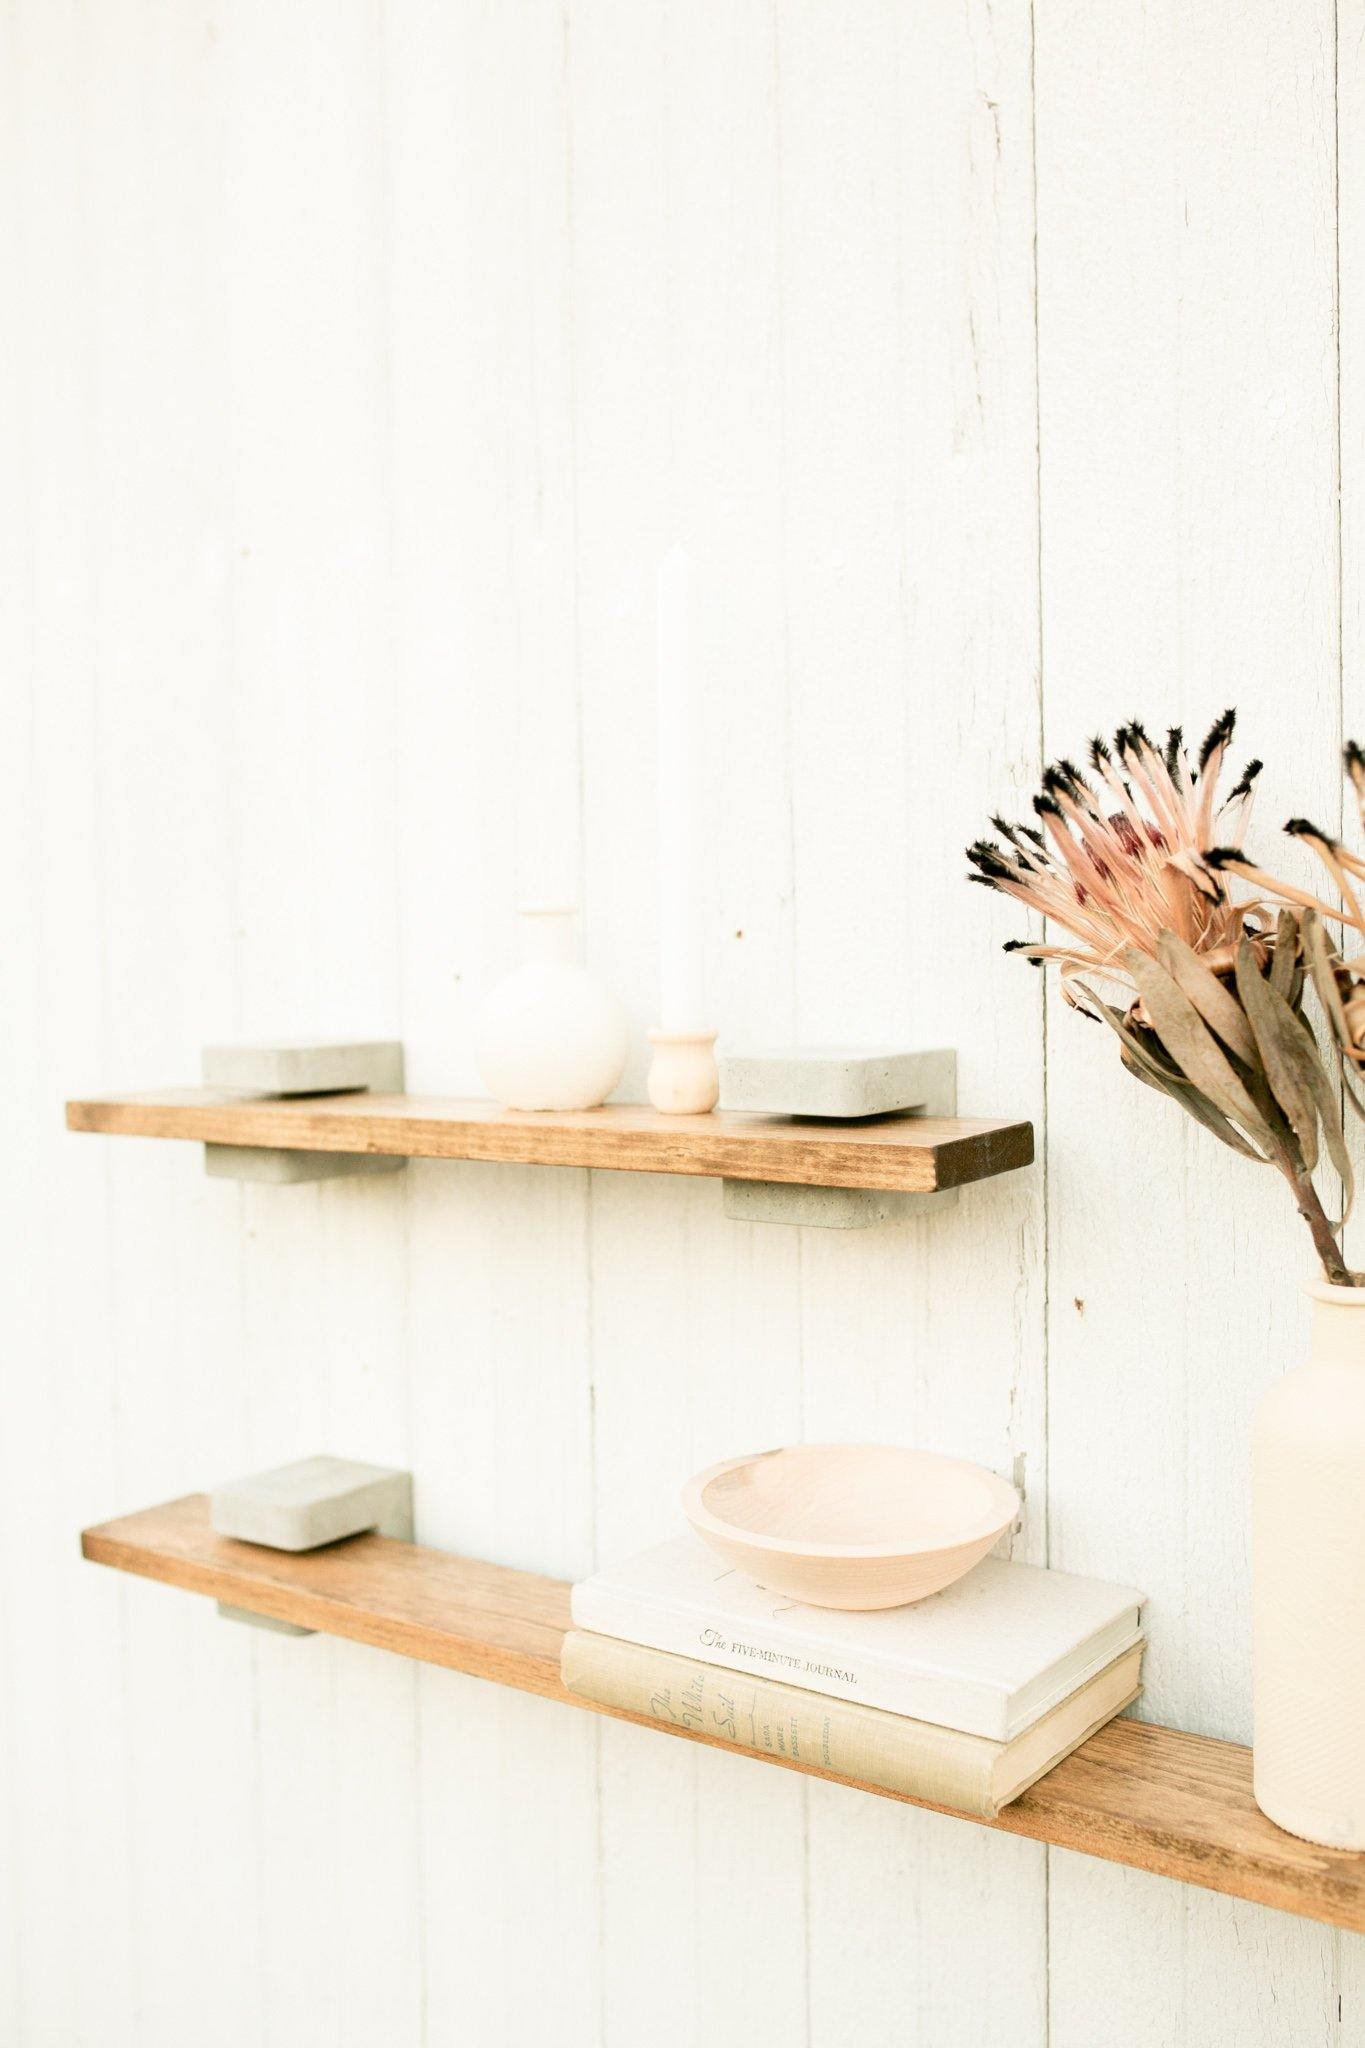 Concrete Bracket Shelf - Timber Made Design Co